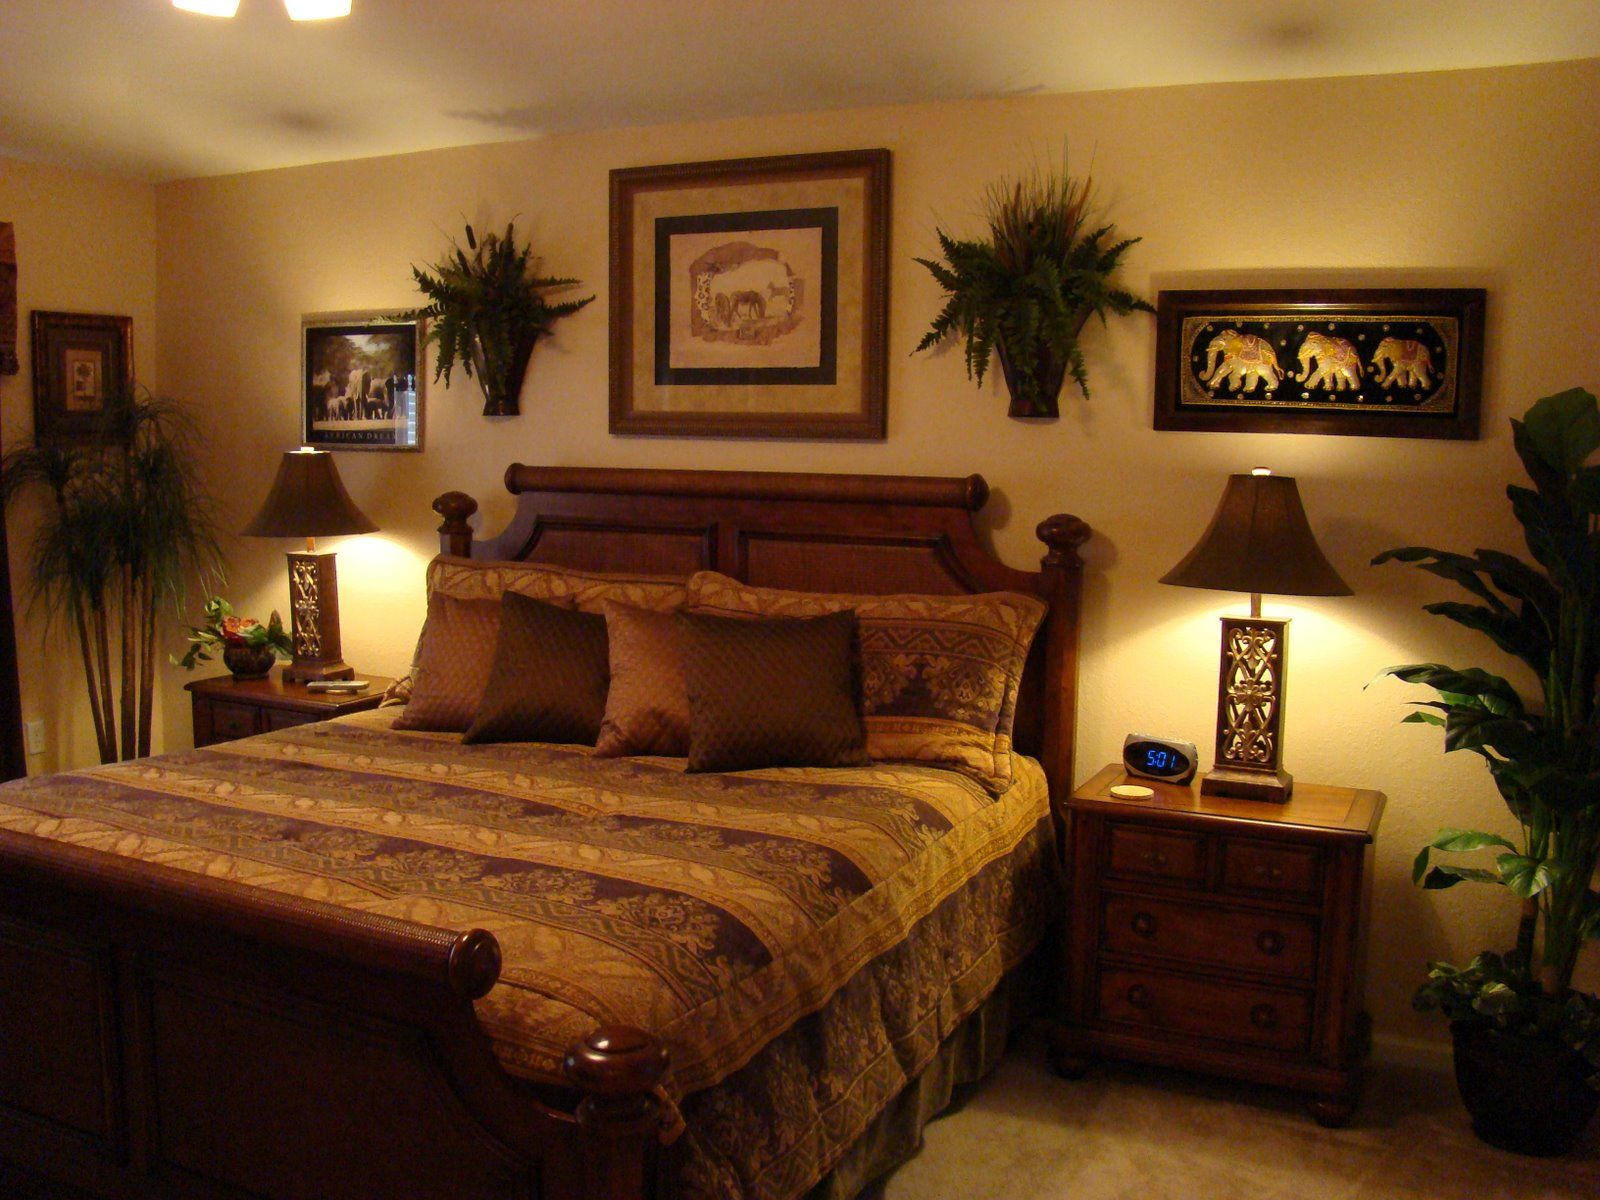 Top ten tourist attractions in kenya master bedroom bedrooms and safari bedroom - Www bedroom decorating ideas ...